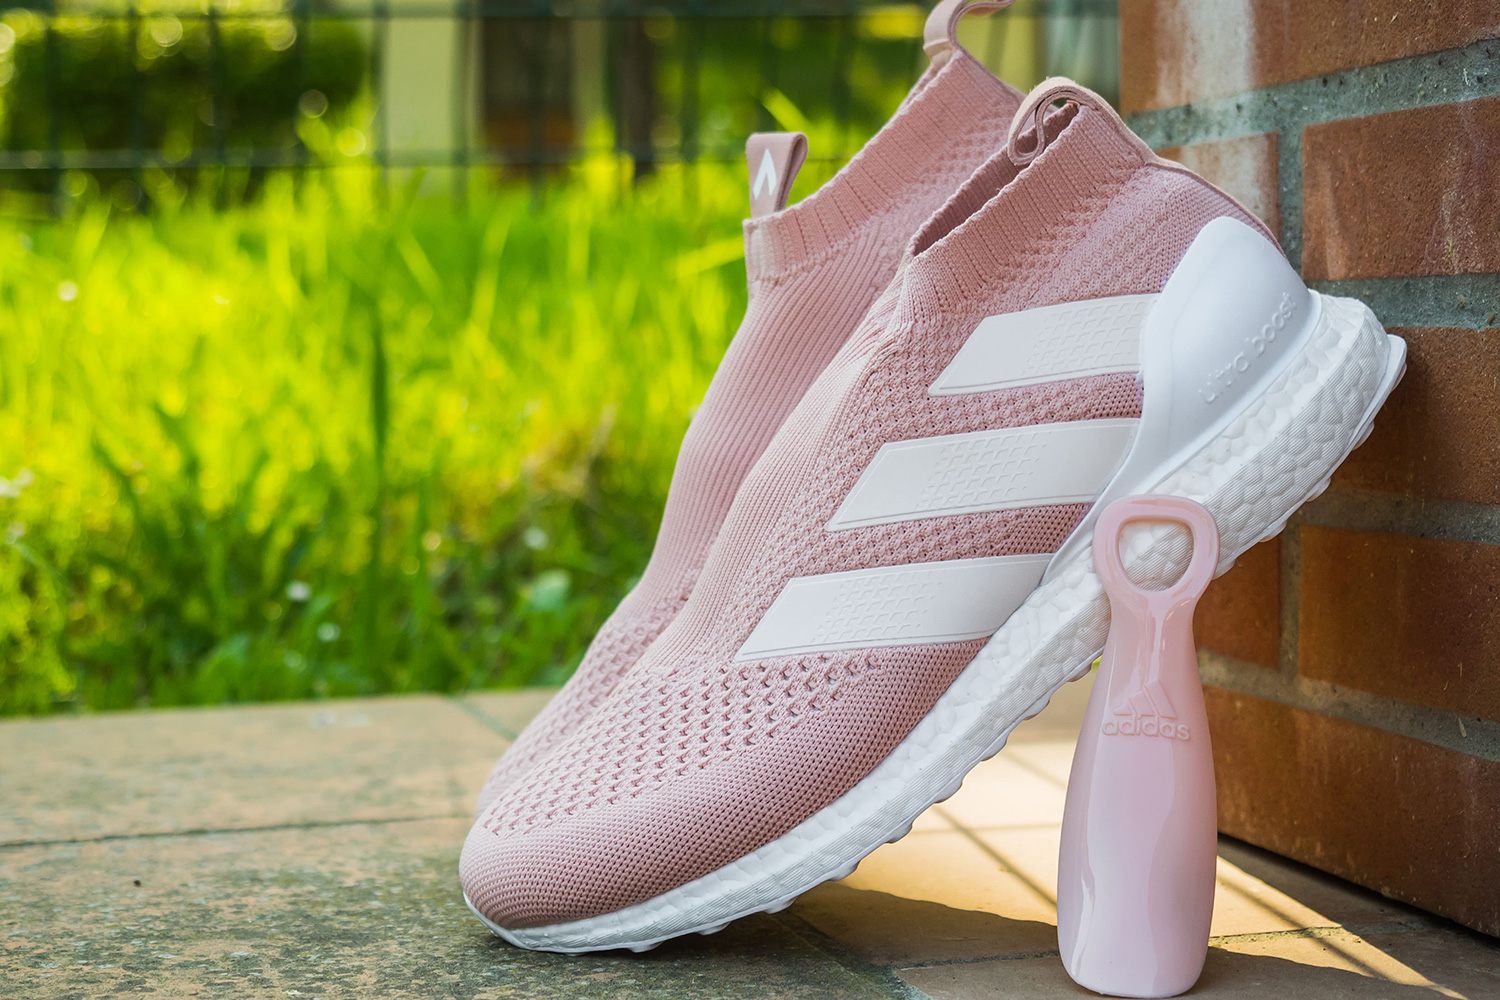 kith-adidas-ace-16-purecontrol-ultra-boost-03